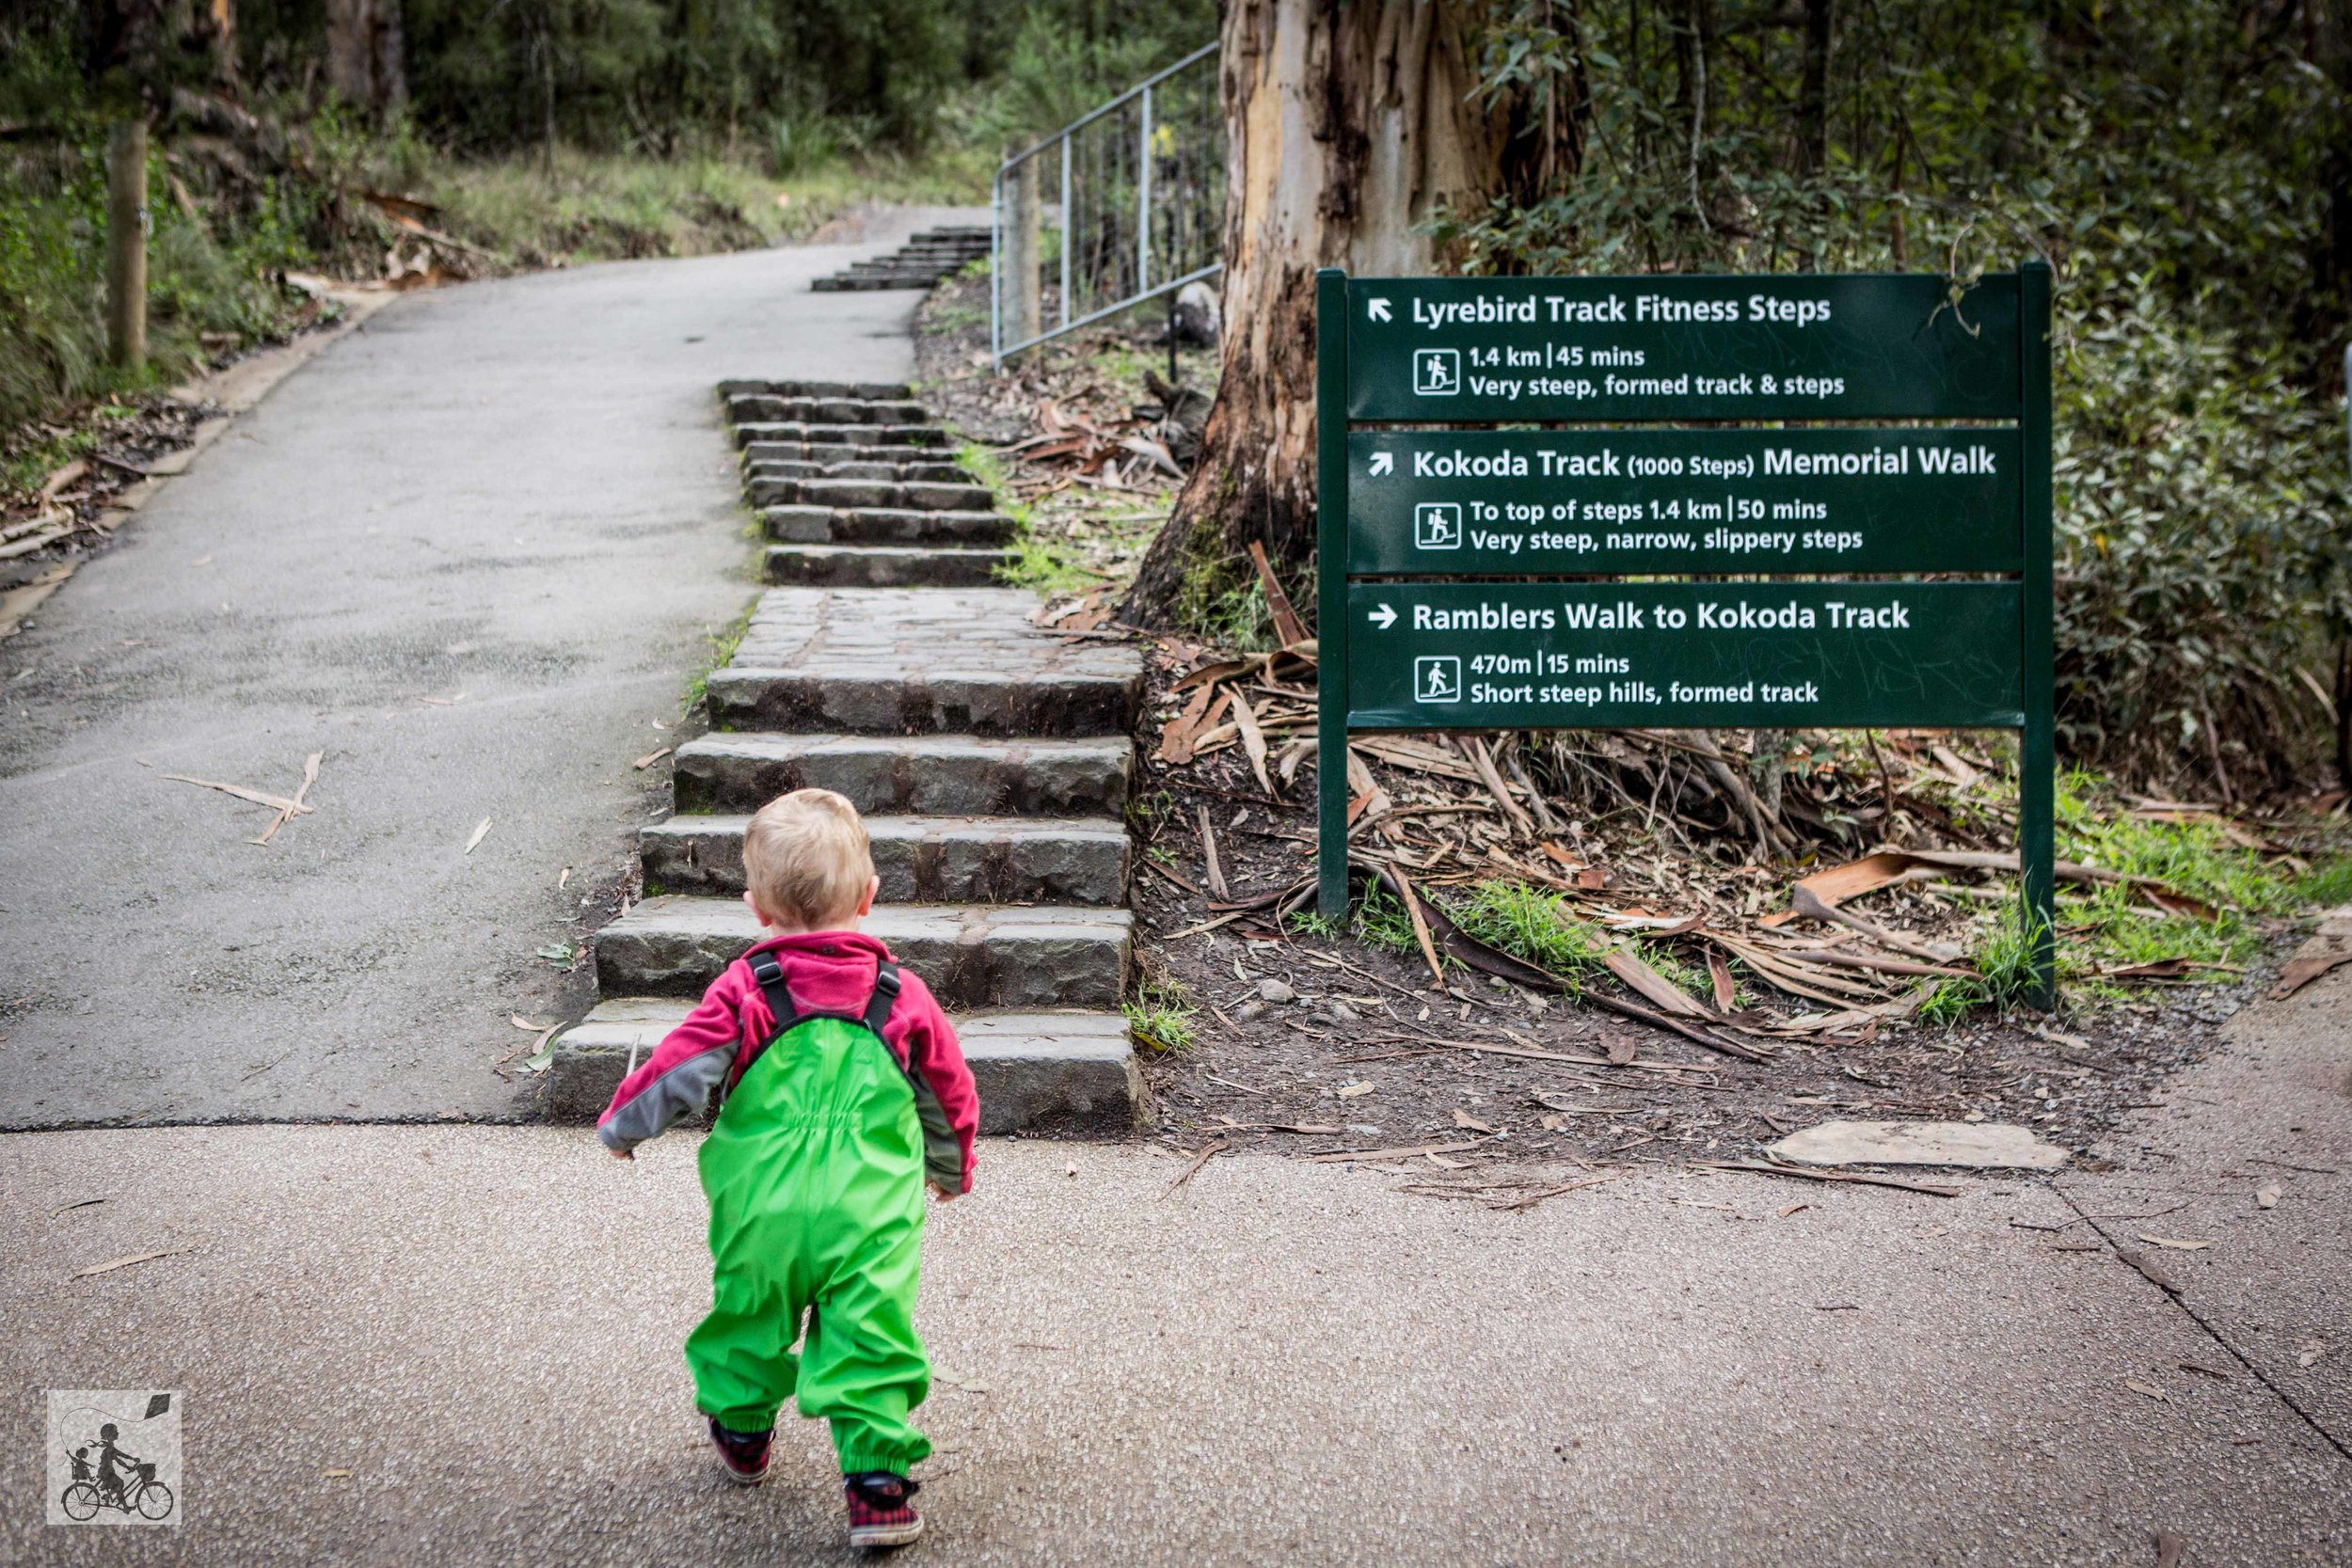 1000 Steps - Mamma Knows East (17 of 19).jpg